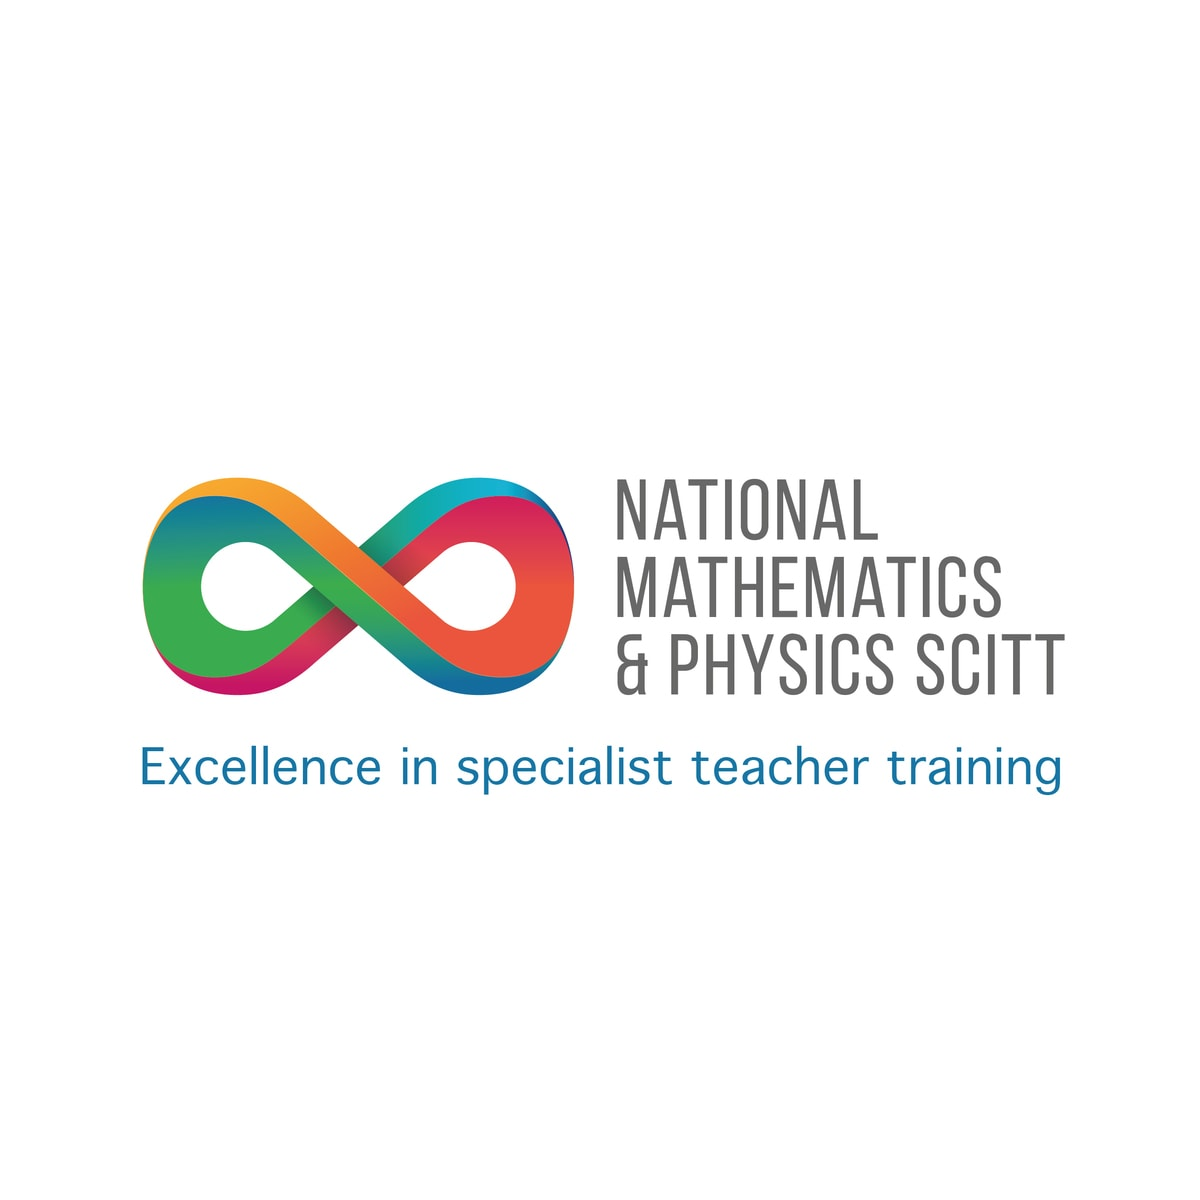 National Mathematics & Physics SCITT